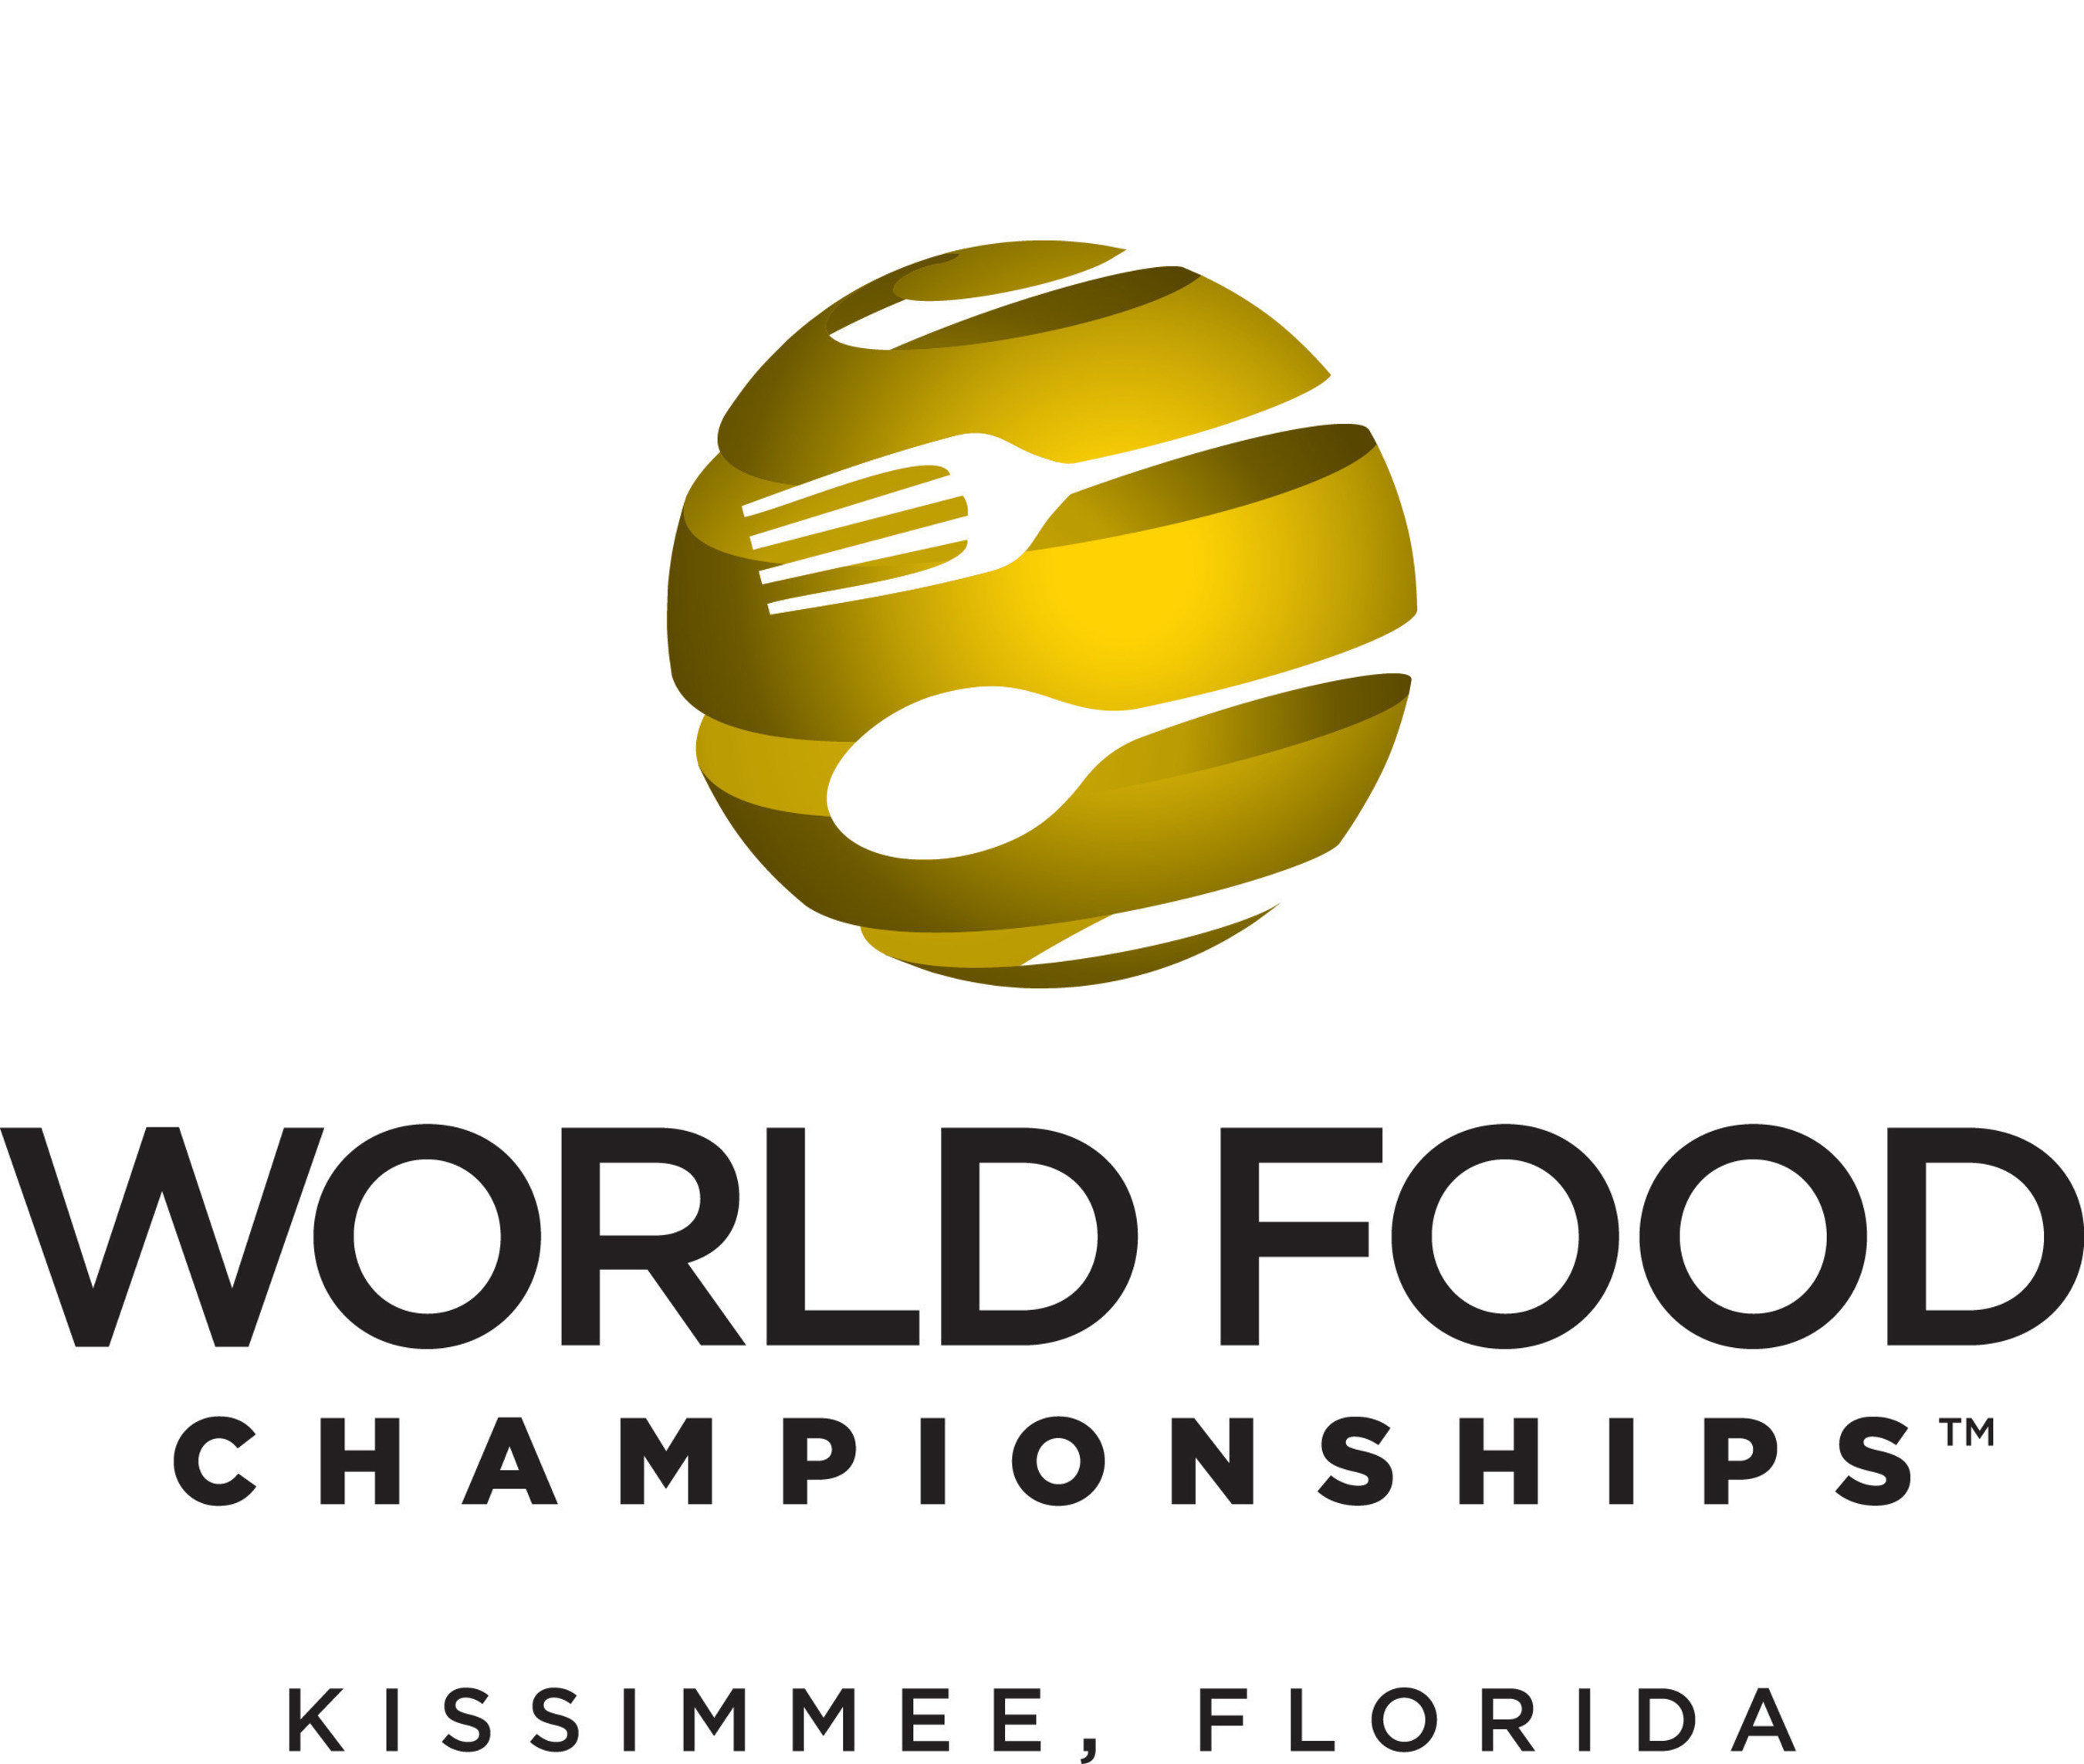 WORLD FOOD CHAMPIONSHIPS, worldfoodchampionships.com, the world's largest Food Sport competition.